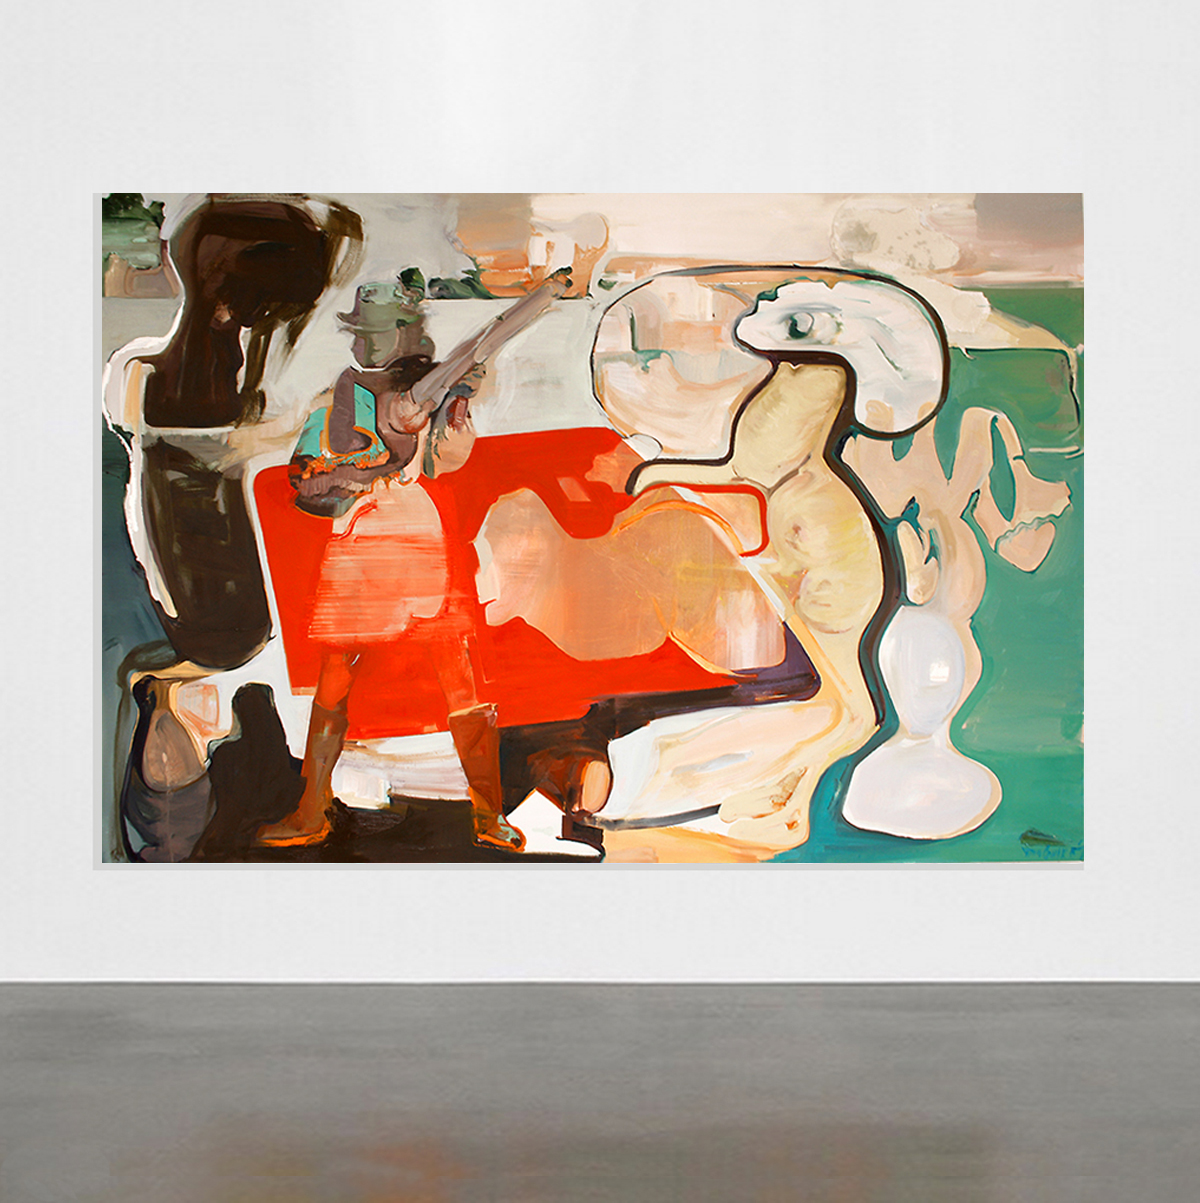 Zu Tisch N° 11, oil on canvas, 160 x 210 cm @ Hafentor 7 / 2014